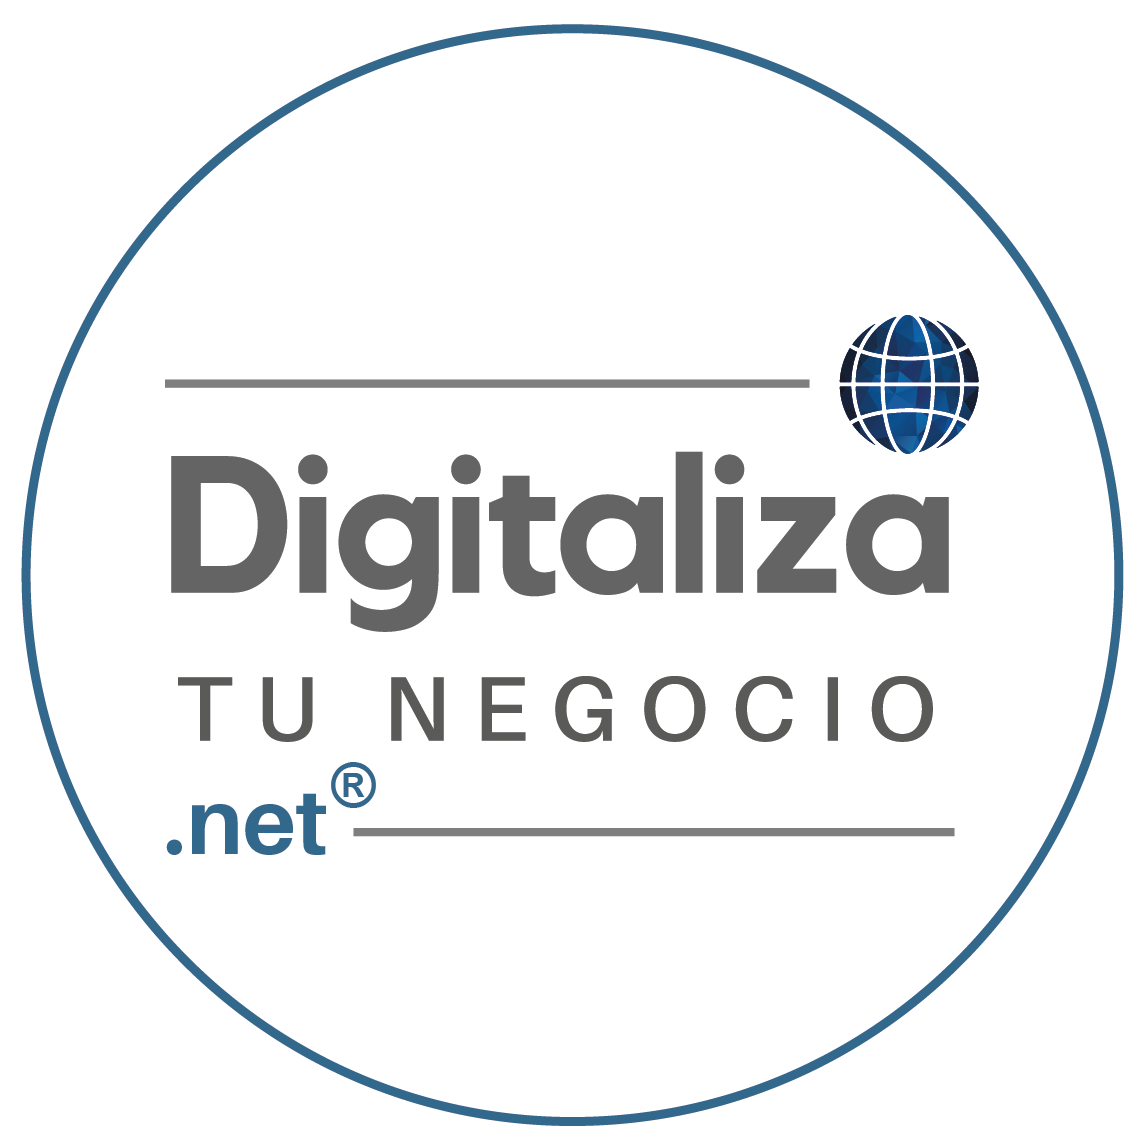 Digitaliza Tu Negocio | digitalizatunegocio.net | Logo.